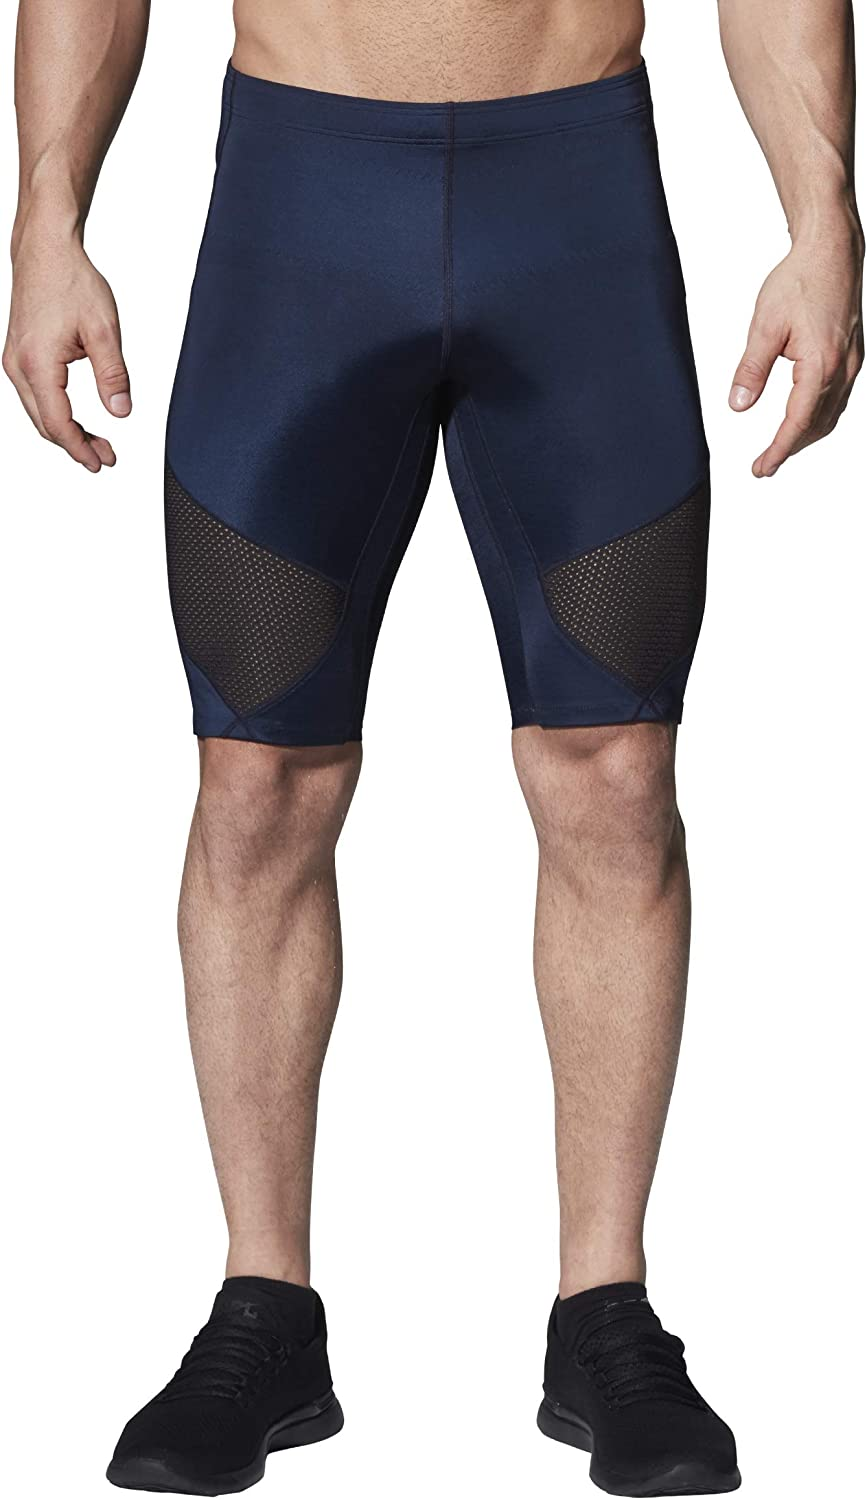 CW-X Men's Stabilyx Ventilator New Shipping Free Shorts Compression Support Max 65% OFF Joint